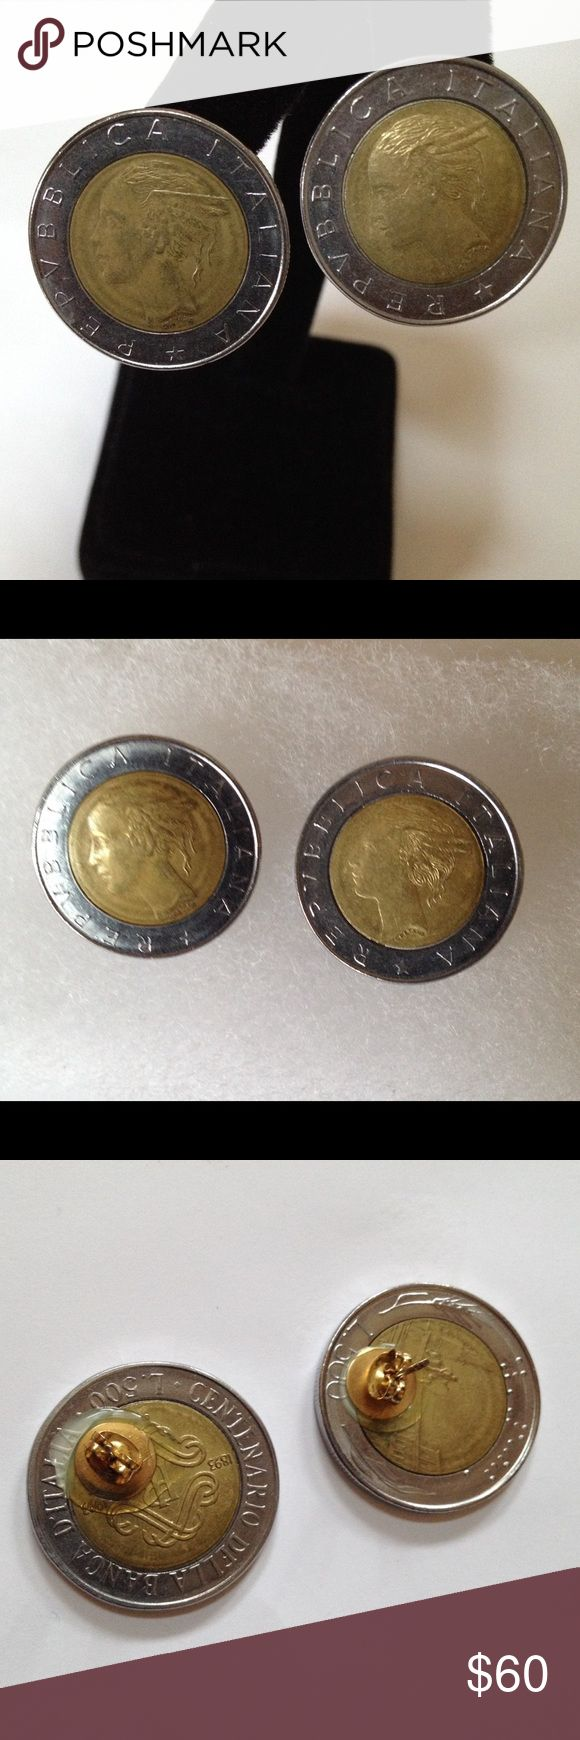 Genuine Lira Coin Italy Earrings Silver Gold Rare Piece of history from Italy. Pre-Euro currency.  No longer in circulation. Genuine Italian Lira Coins made into earrings, gold plated post and backs. Gorgeous on the ear! Jewelry Earrings